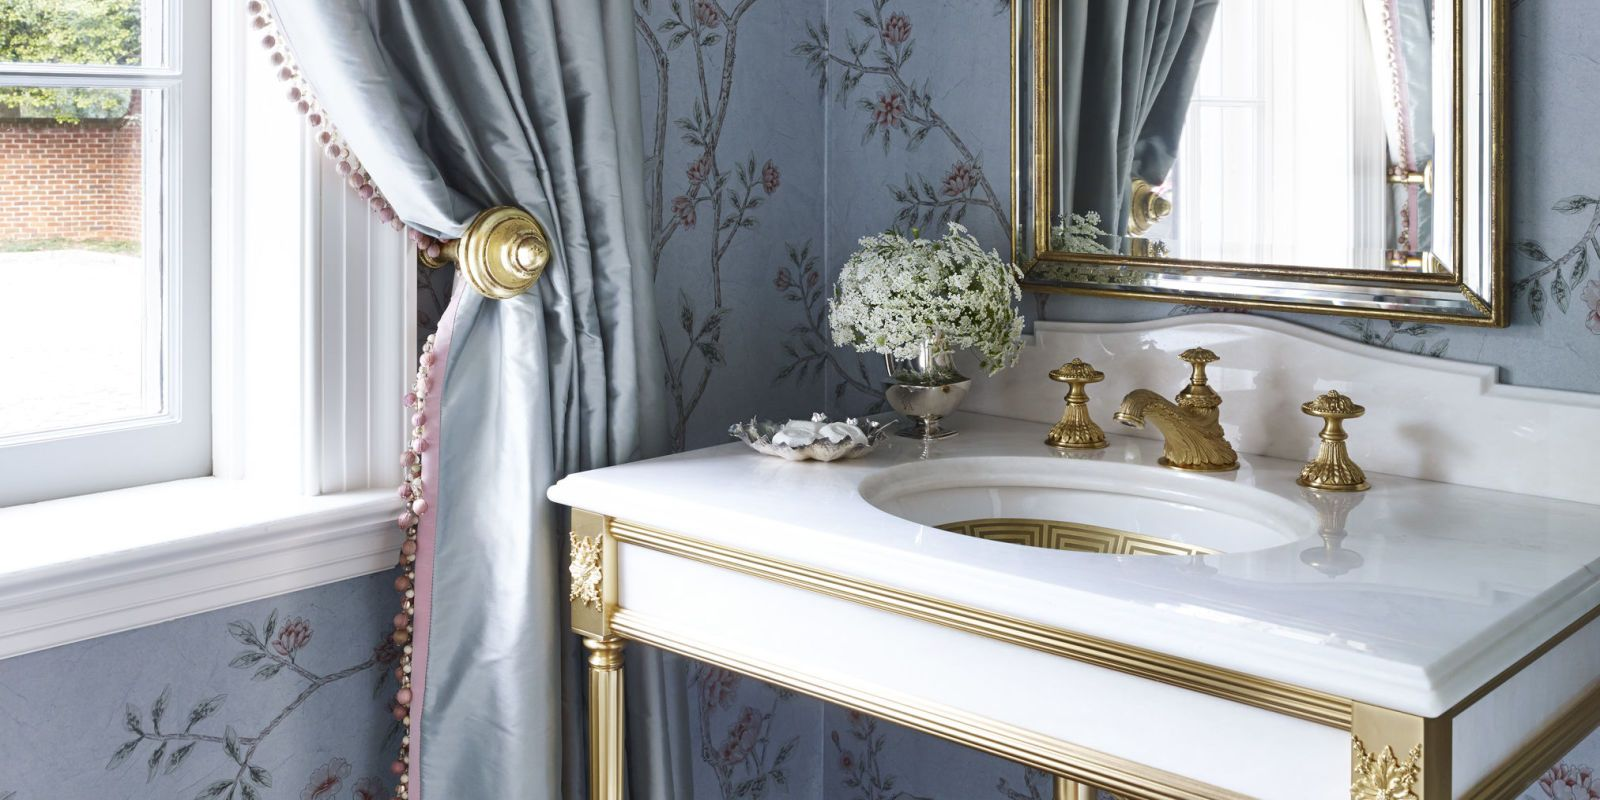 20 Incredible Small Bathroom Ideas That Are Effortlessly Elegant